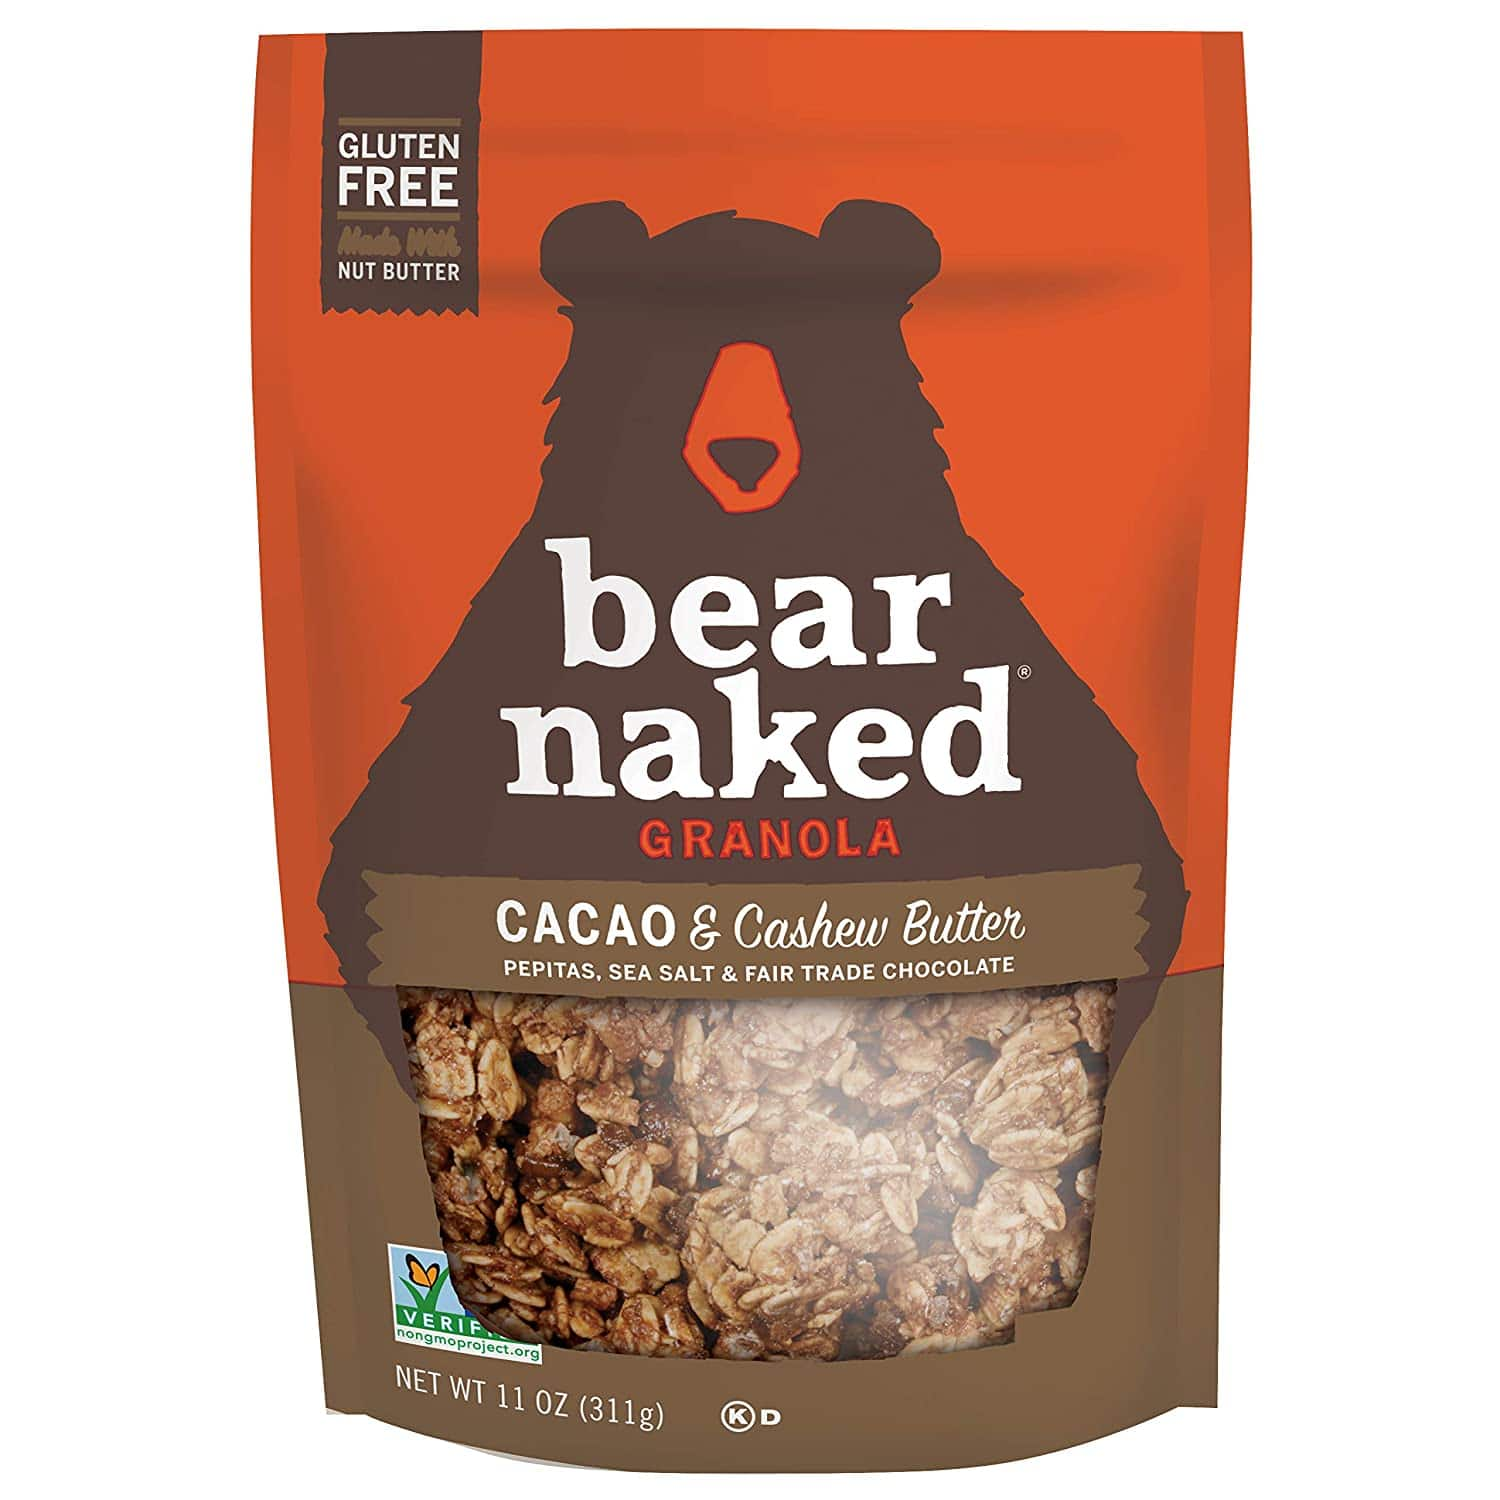 Bear naked cacao and cashew butter granola vegan snack review